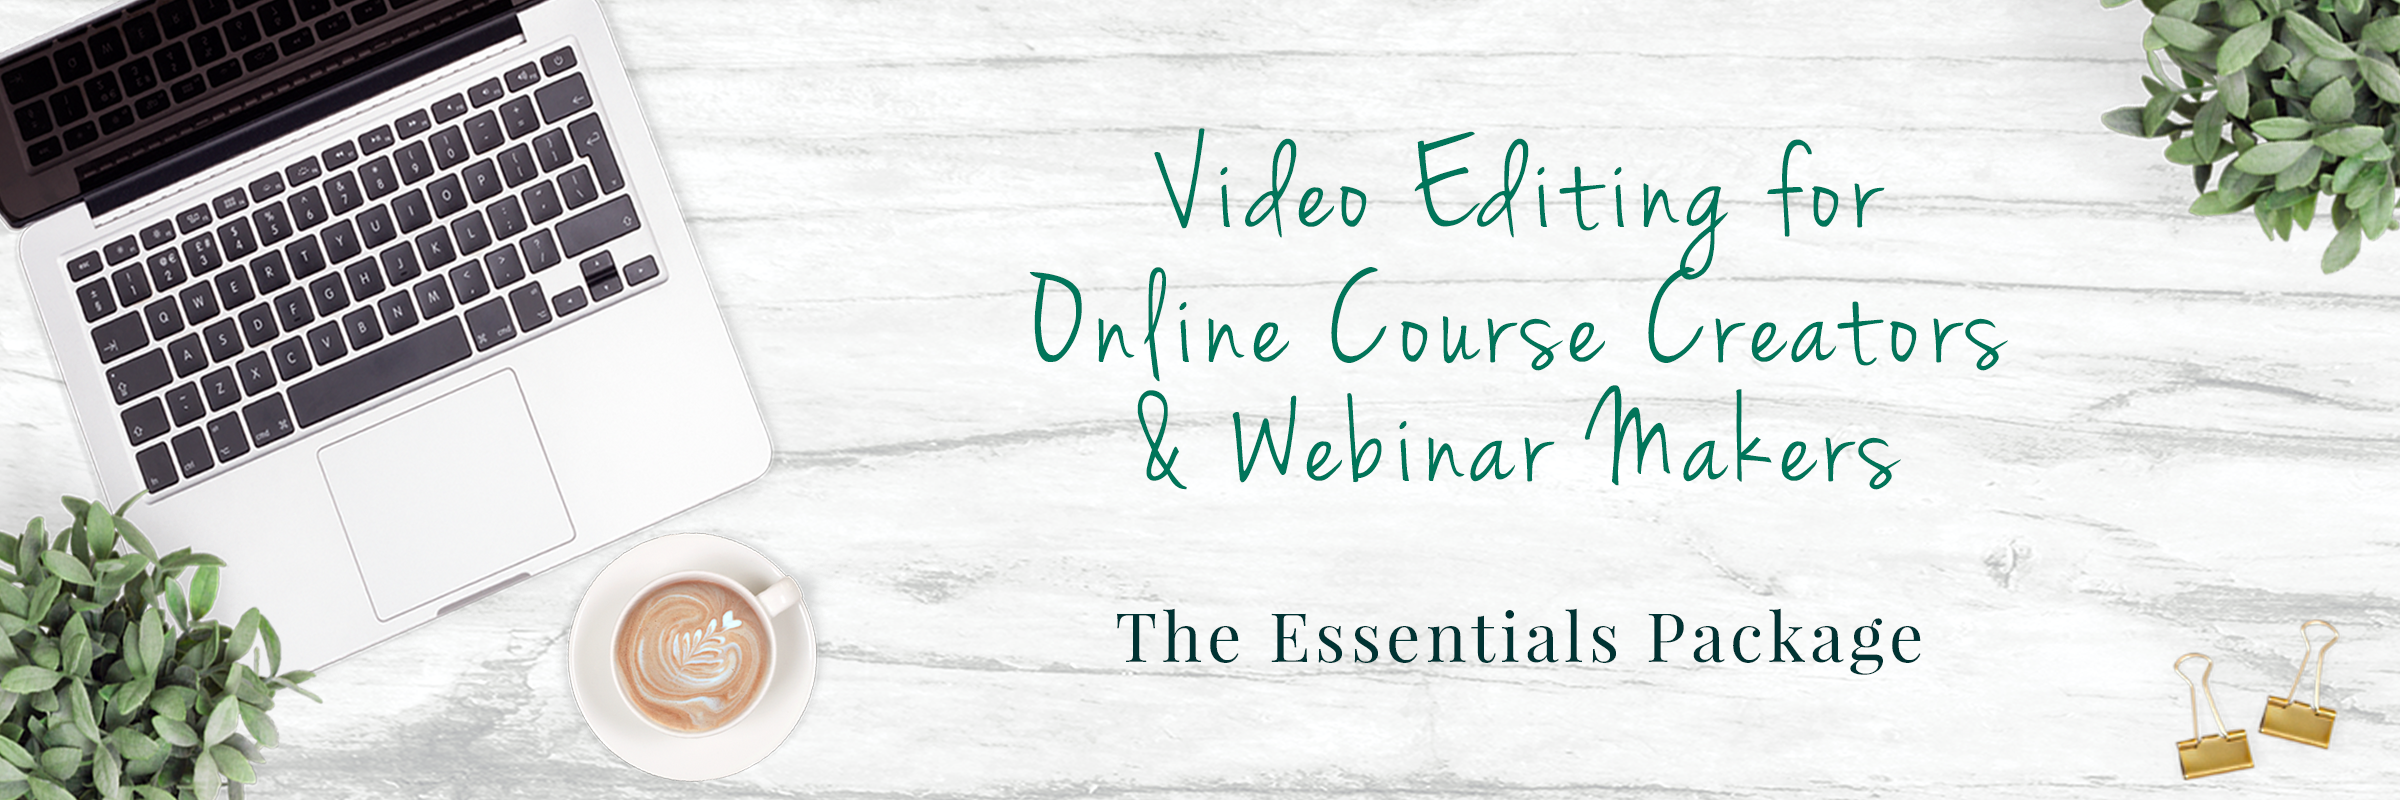 Webinar Video Editing Slider includes course creators 2400 x 800 – 2020